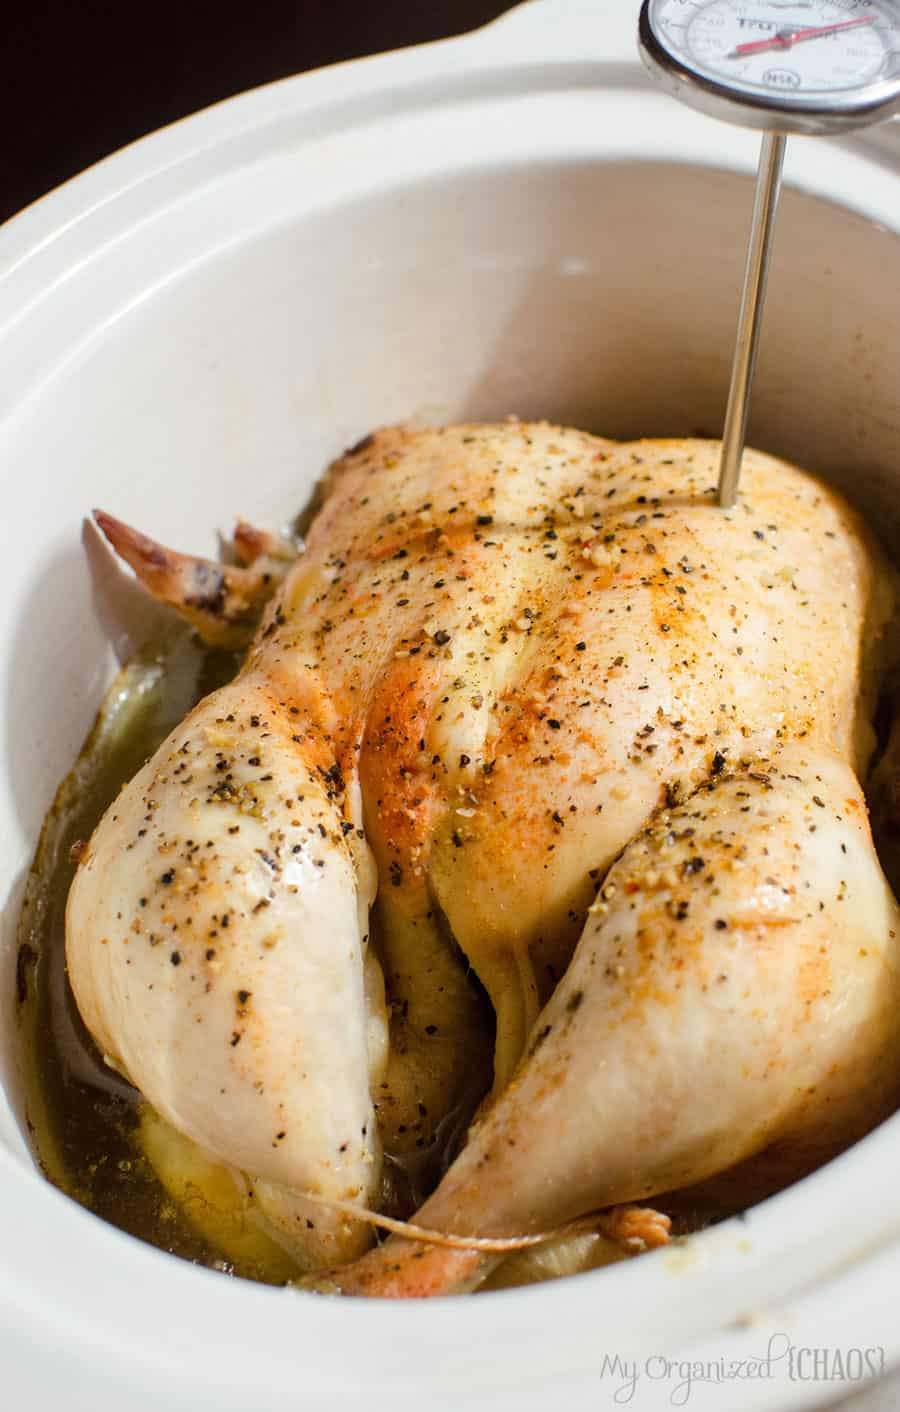 Youtube Cooking: How To Cook A Whole Chicken In The Slow Cooker